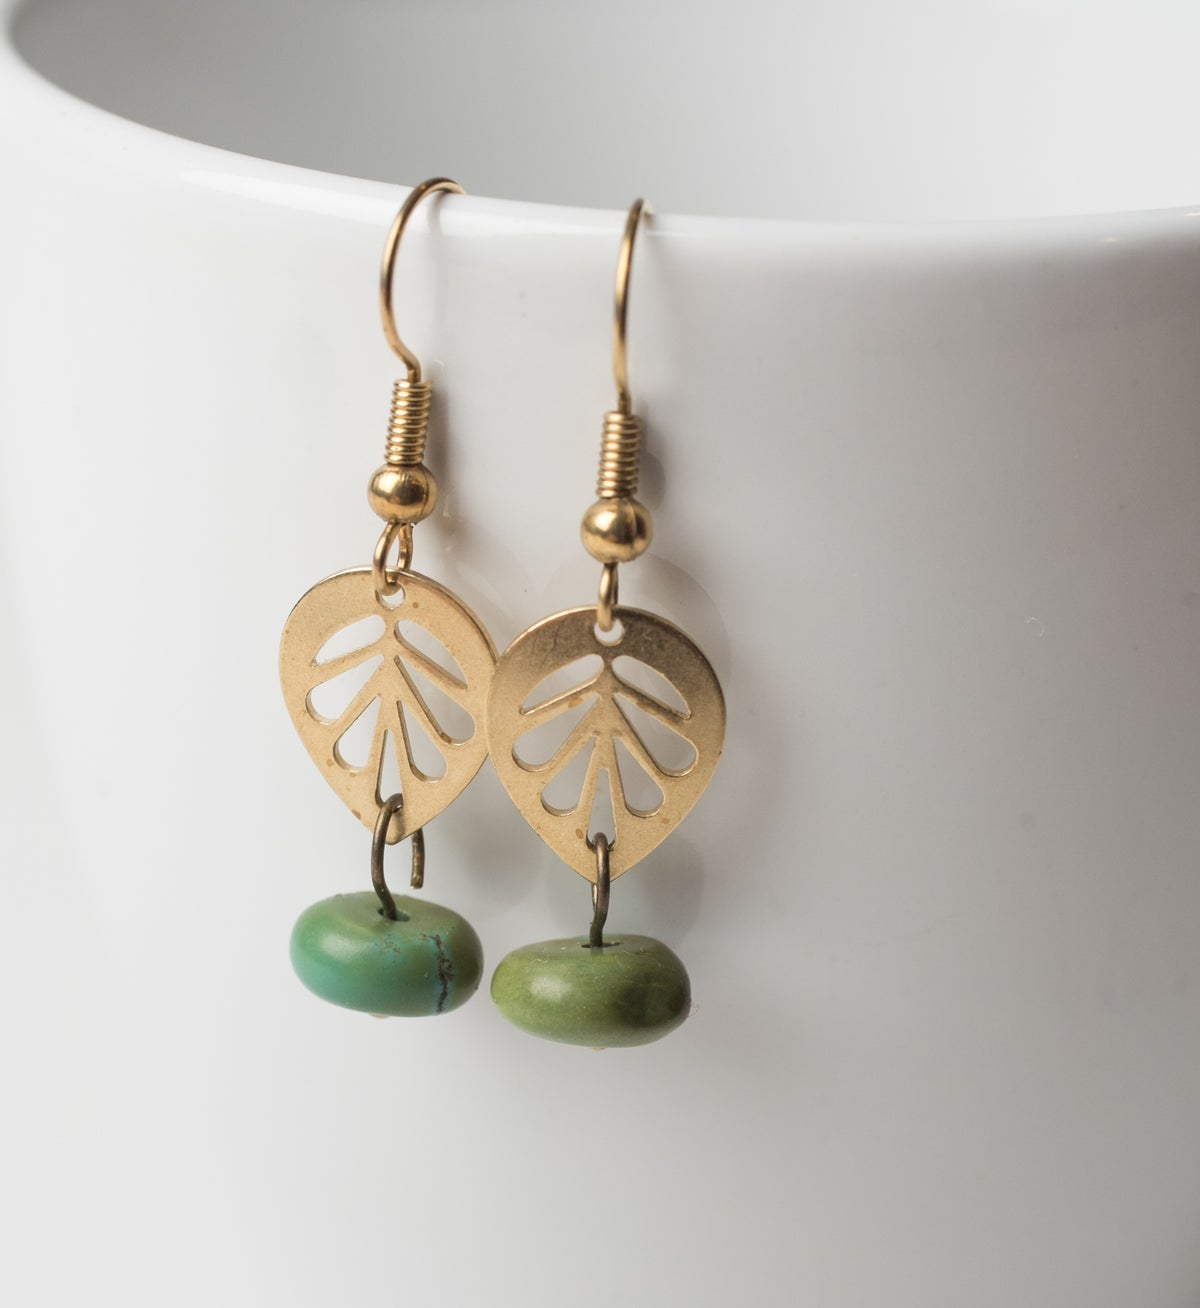 Image of Brass Leaf and Turquoise Earrings